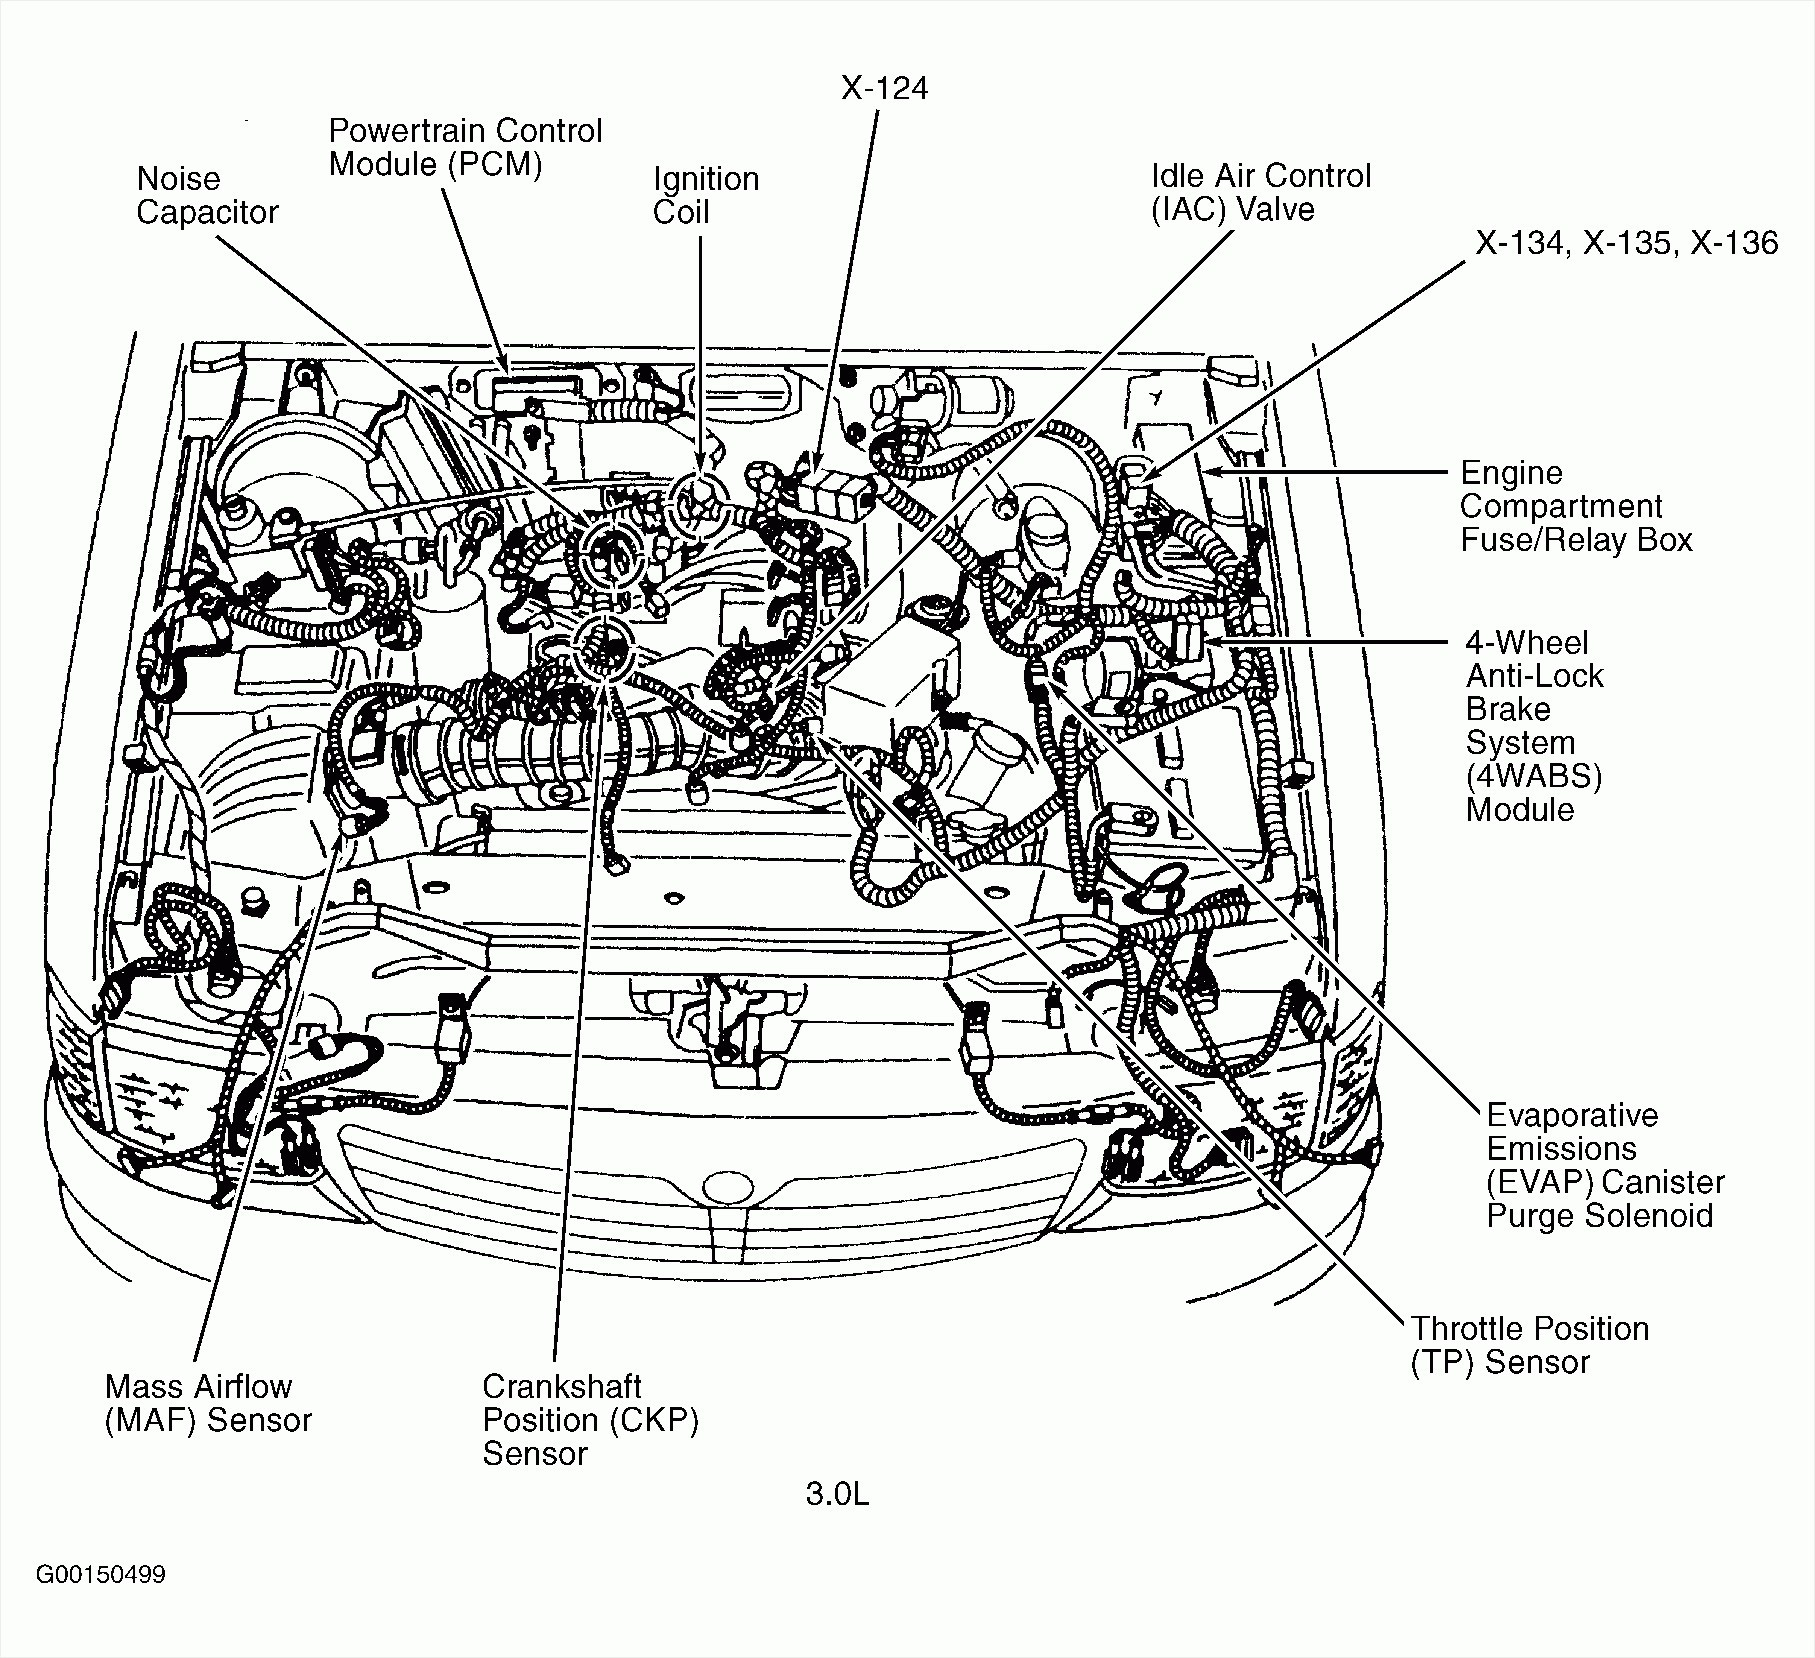 2010 Dodge Caravan 2 4 Engine Diagram - Data Wiring Diagram Update